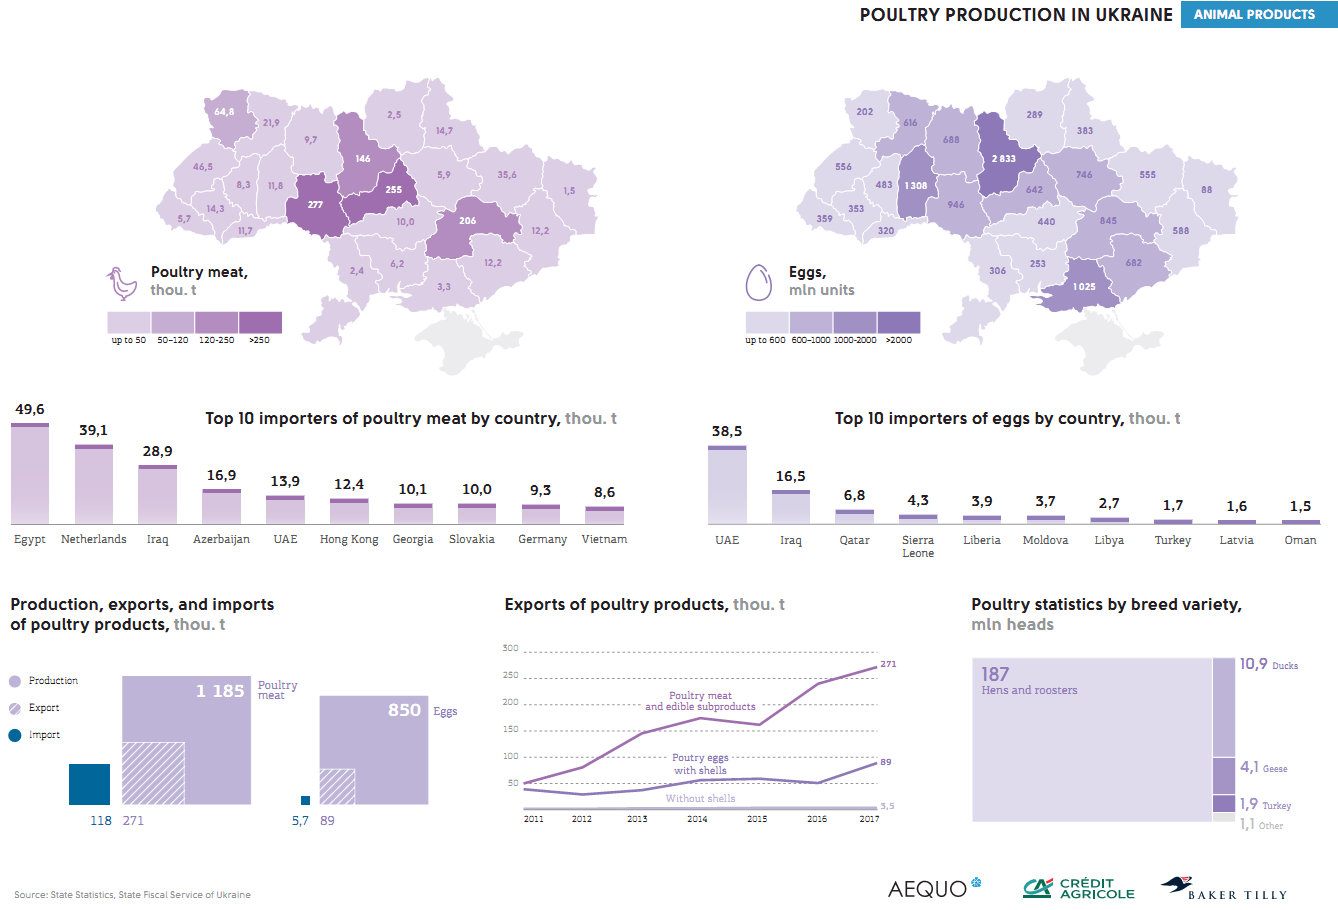 Poultry production in Ukraine (click for full resolution)